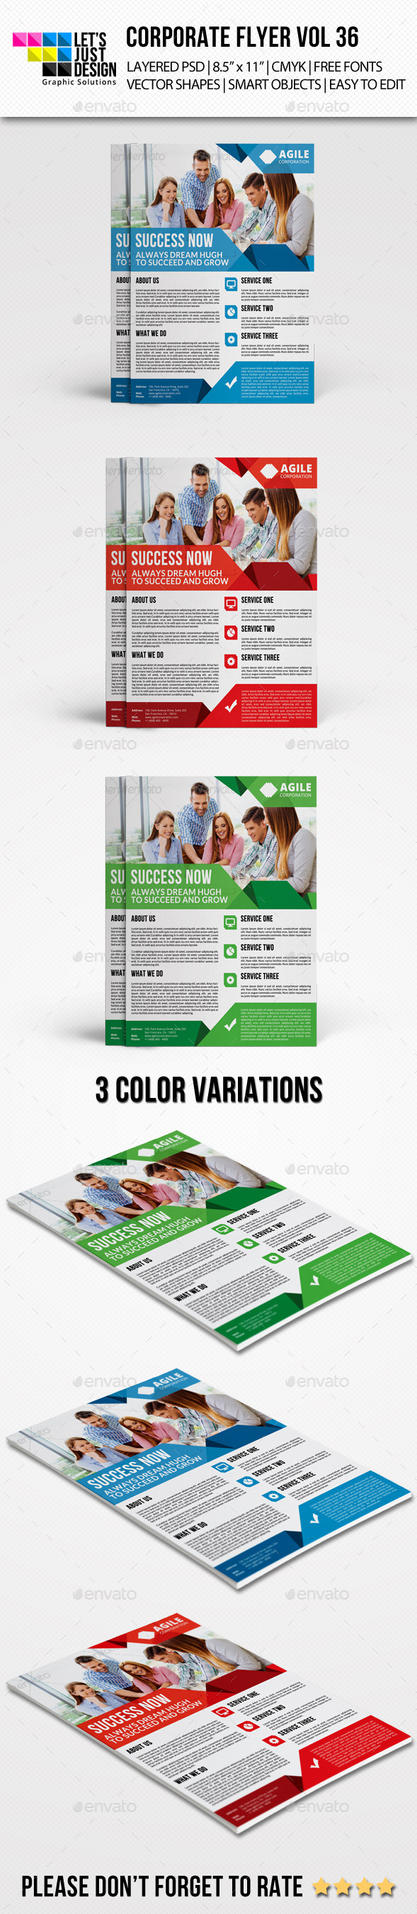 Corporate Flyer Template Vol 36 by jasonmendes